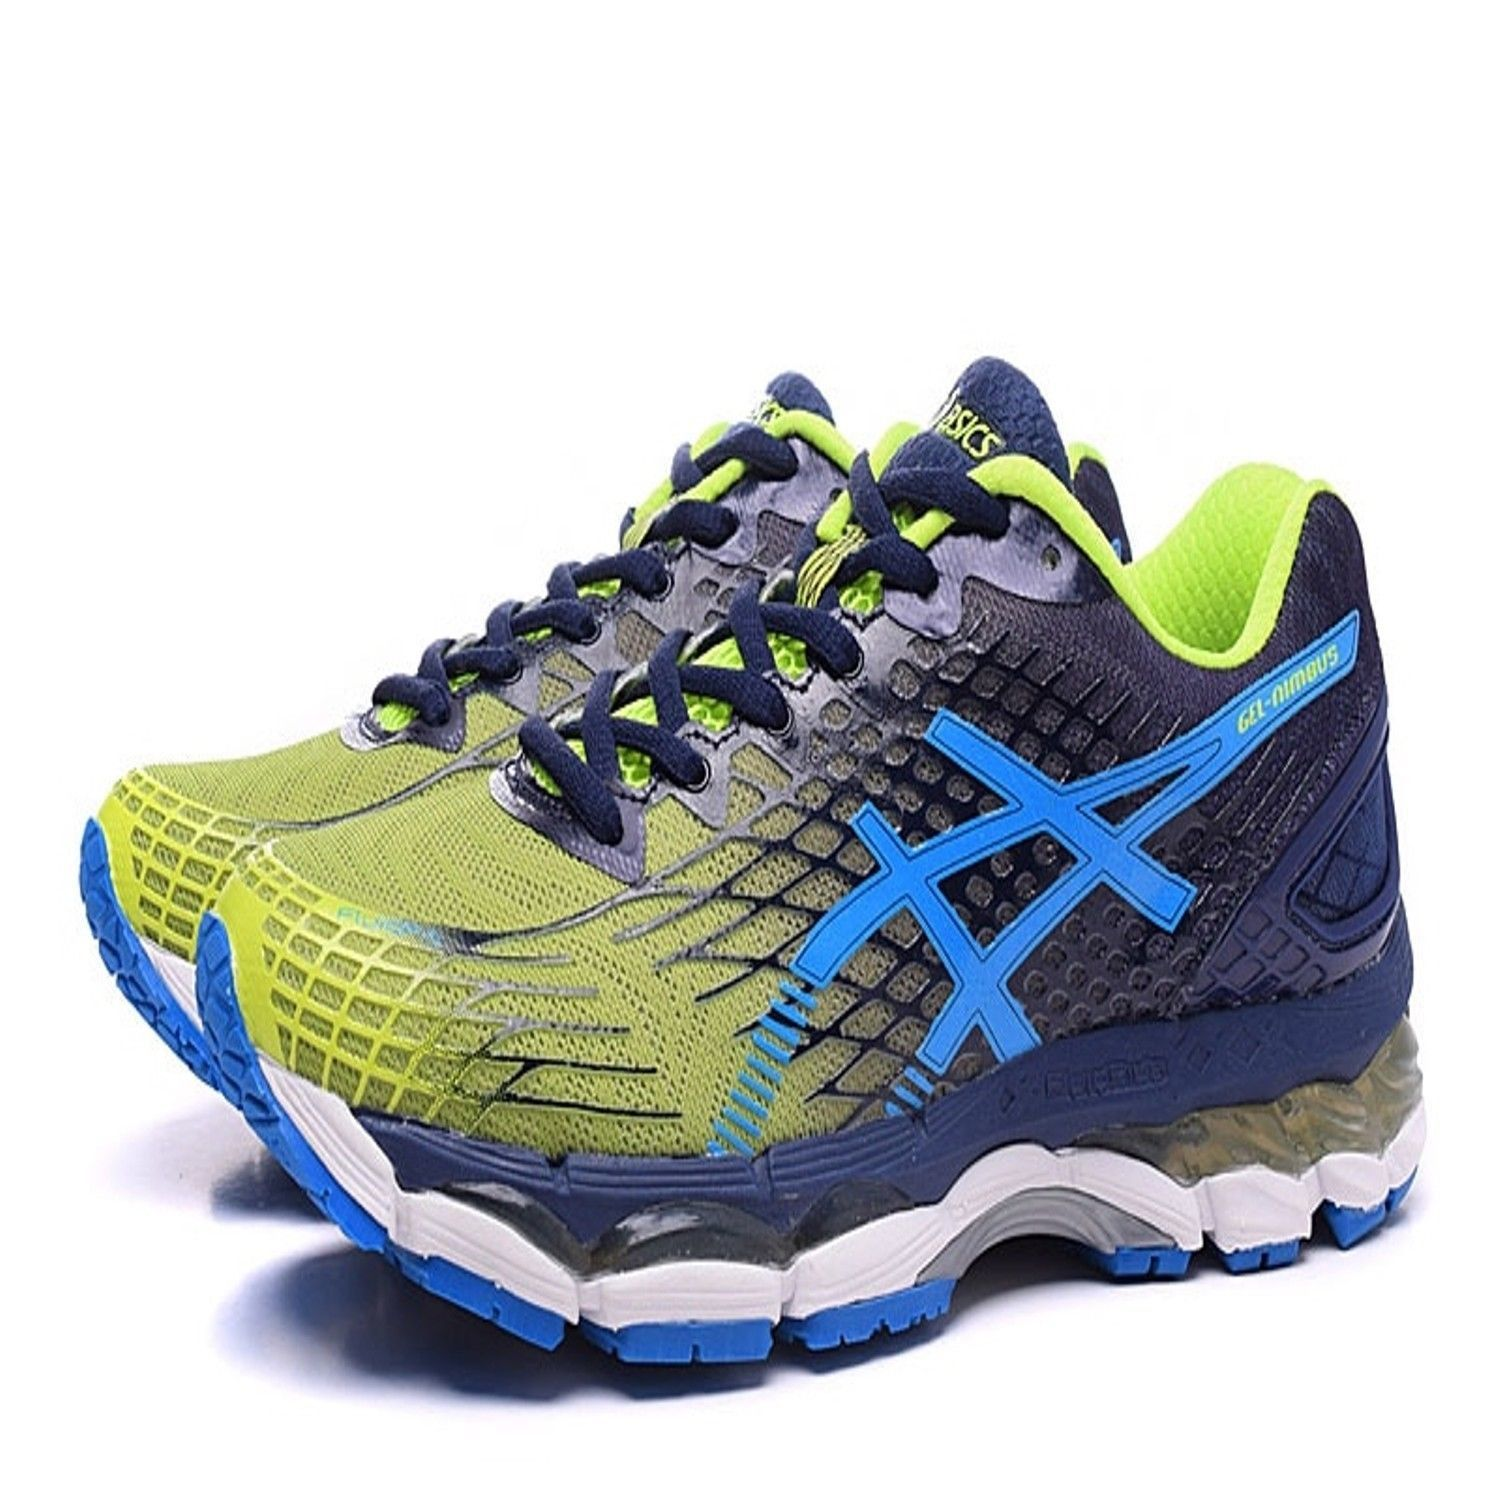 Men's ASICS GEL-KAYANO 17 Sneakers Sports PRO Running Shoes FREE SHIP WORLDWIDE